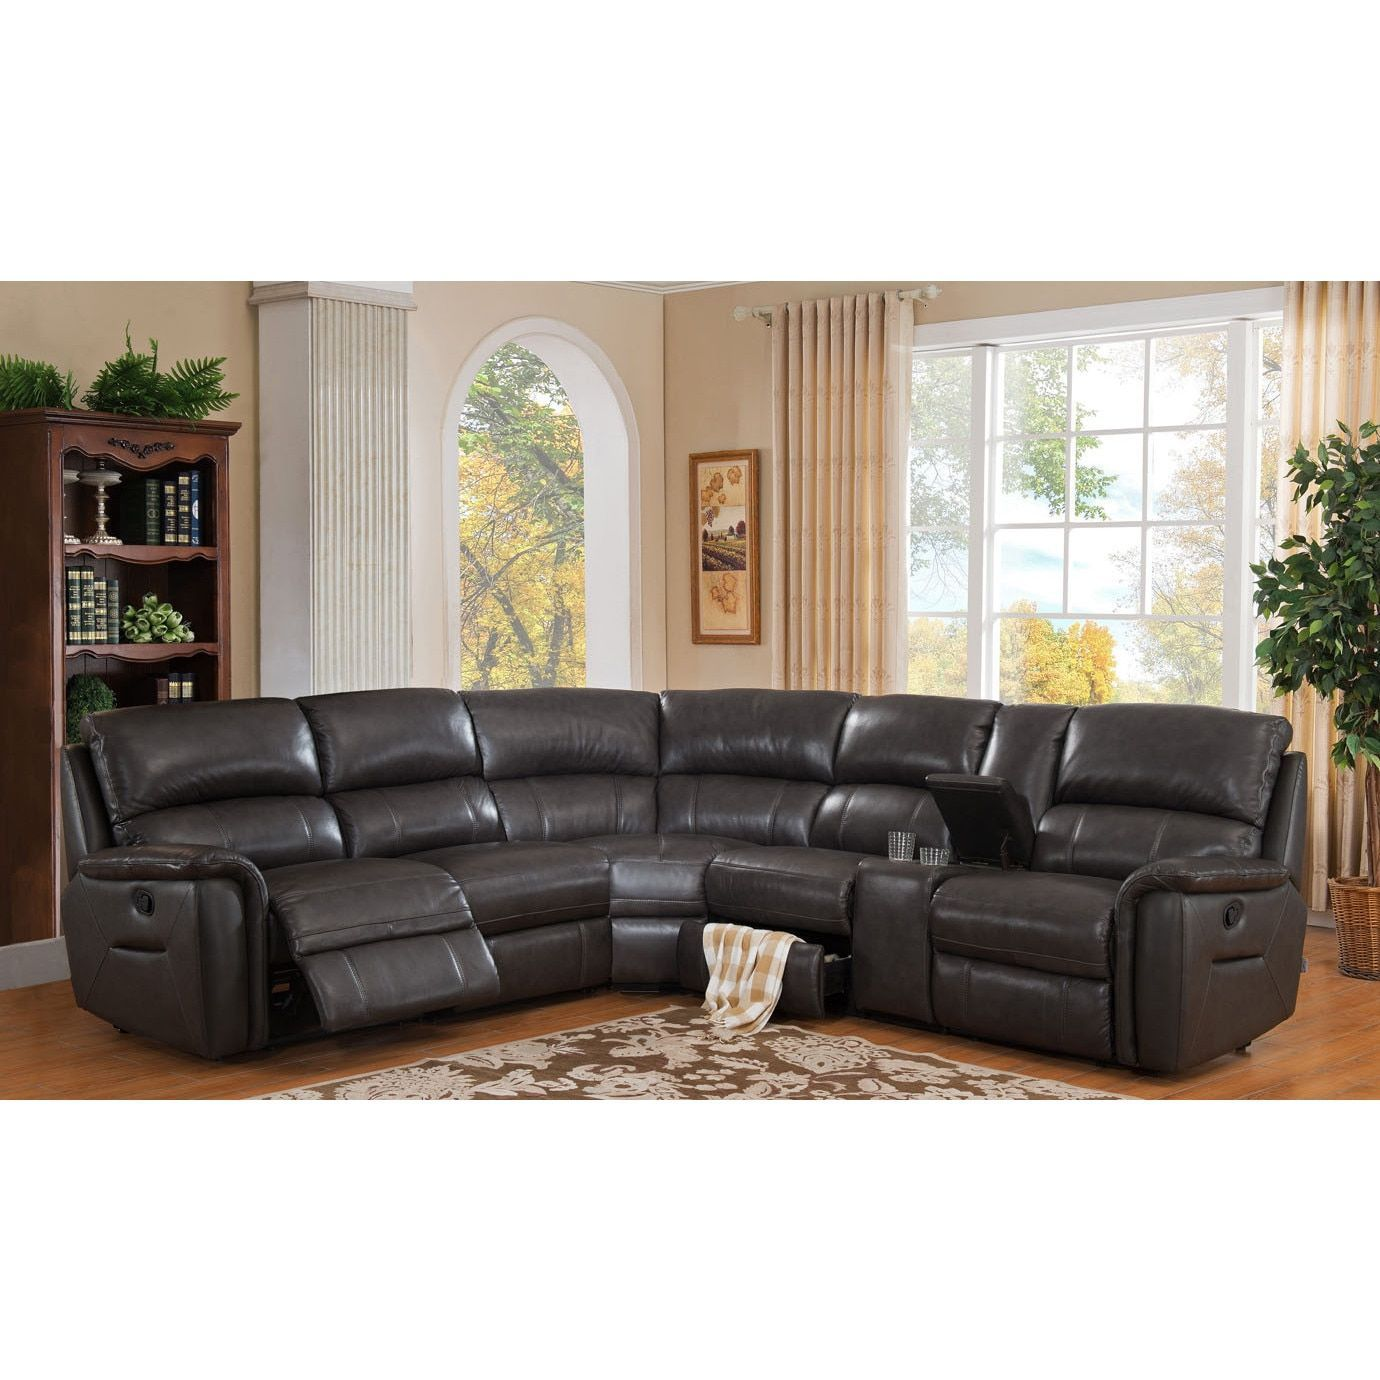 hydeline by amax camino charcoal grey leather reclining sectional rh pinterest co uk